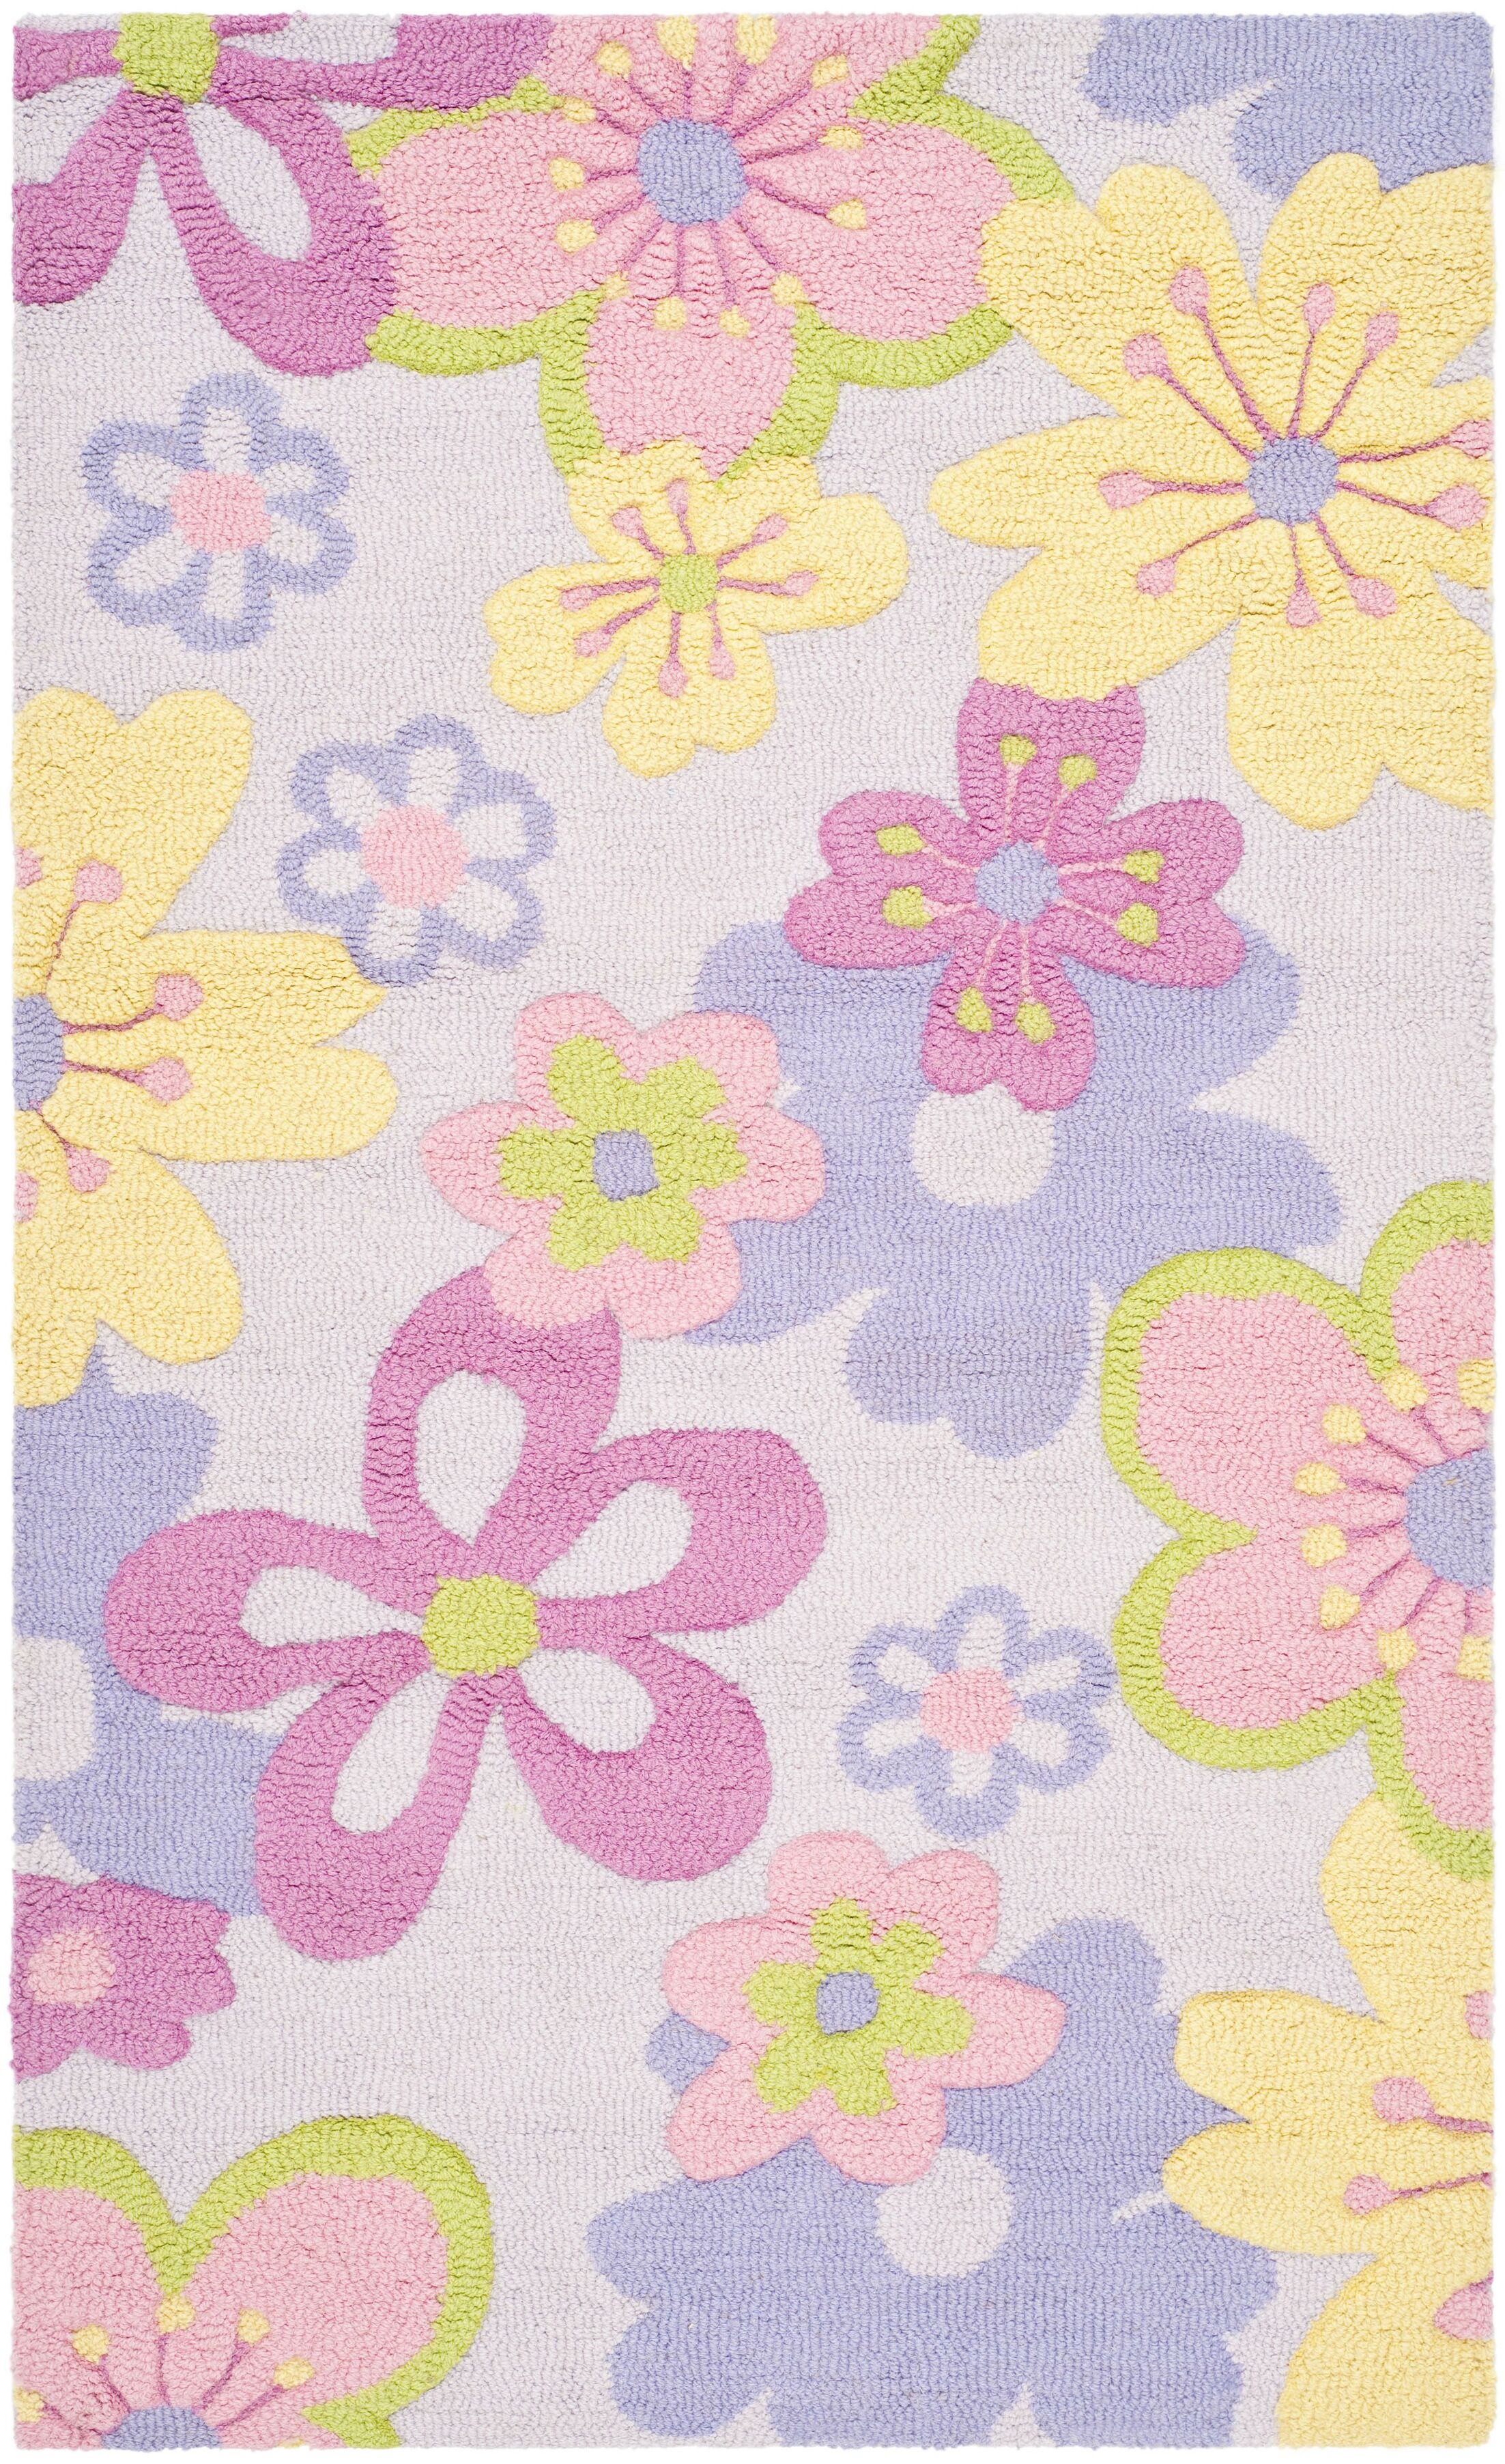 LeVar Hand-Tufted Pink/Purple Area Rug Rug Size: Rectangle 3' x 5'